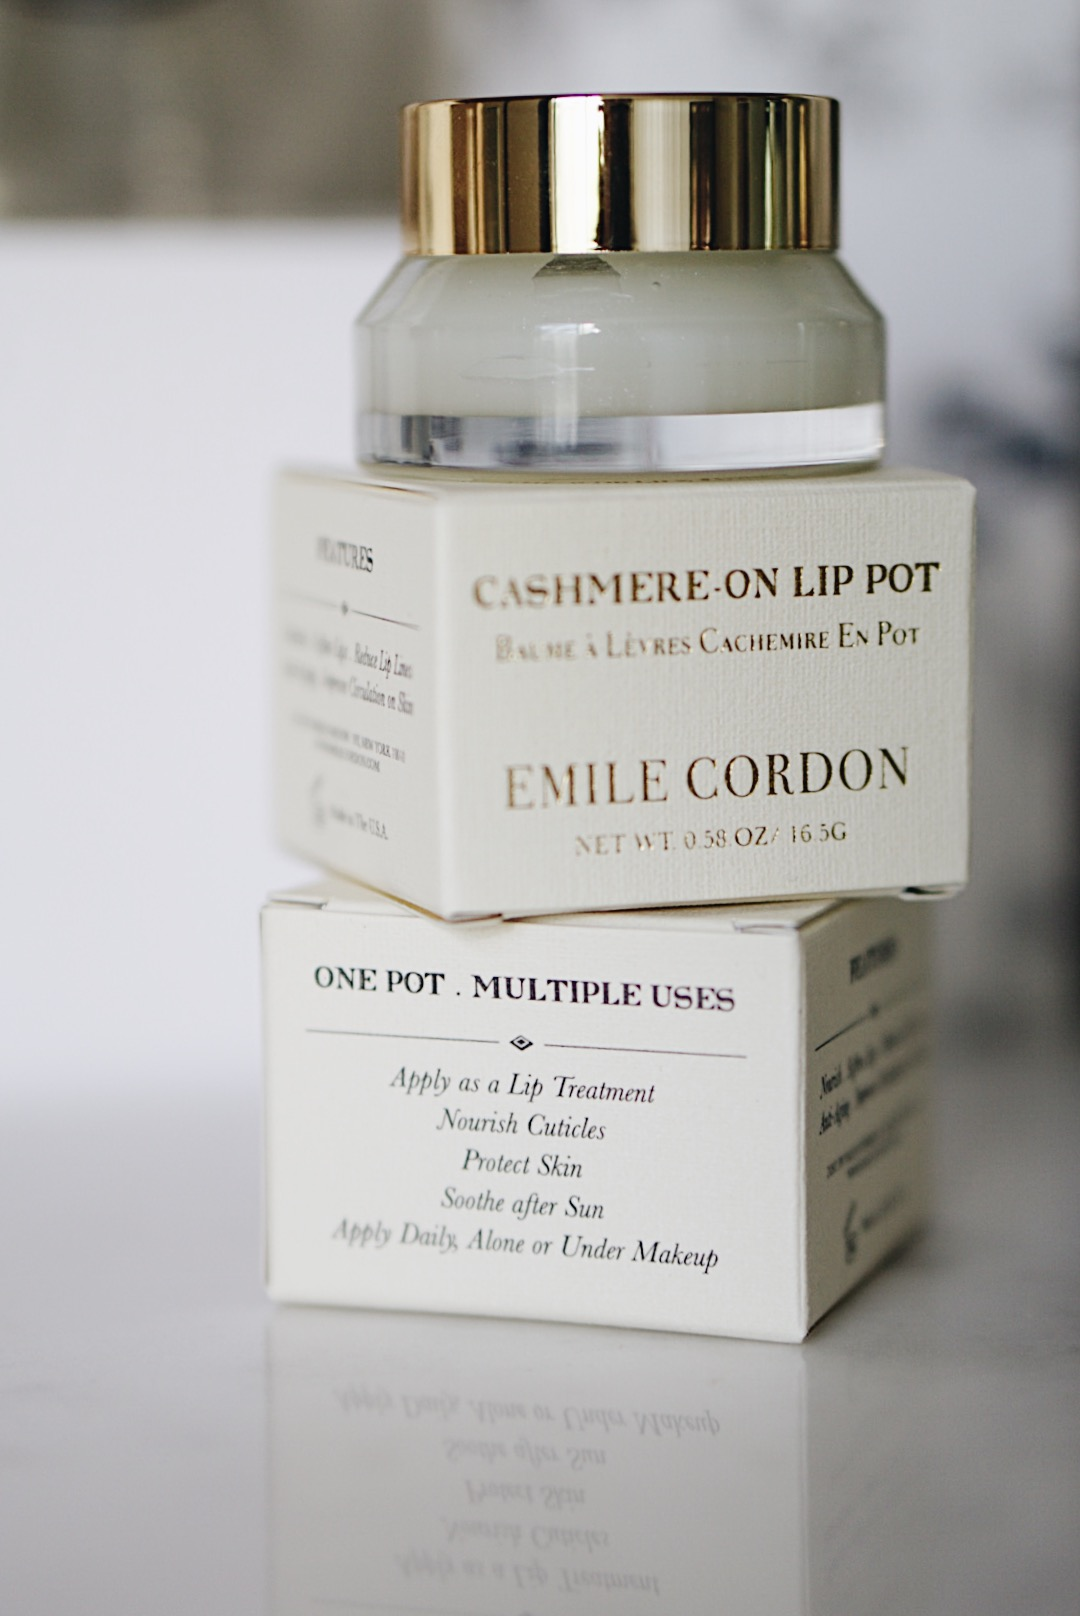 Emile Cordon Cashmere-On Lip Pot No. 72 Coco